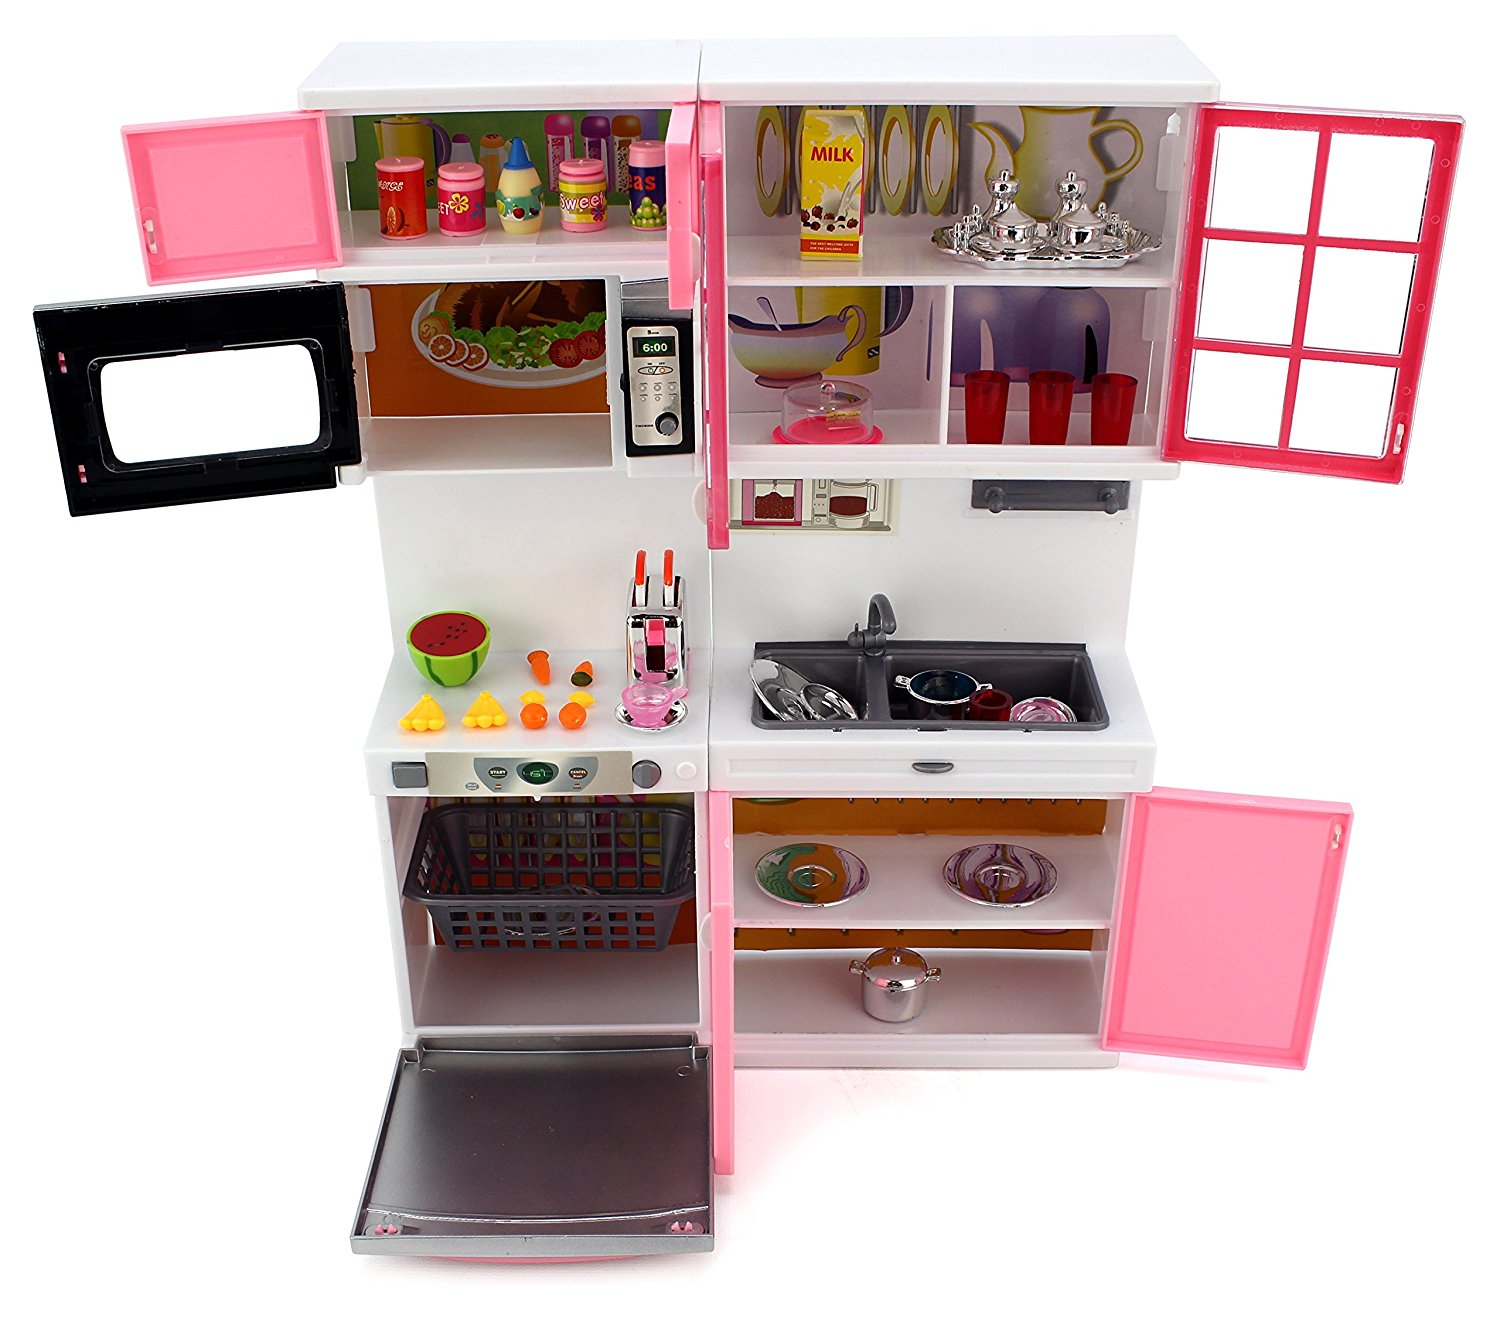 Bộ nhà bếp hồng siêu hiện đại 3 Pin 'Modern Kitchen 16' Battery Operated Toy Kitchen Playset, Perfect for Use with 11-12